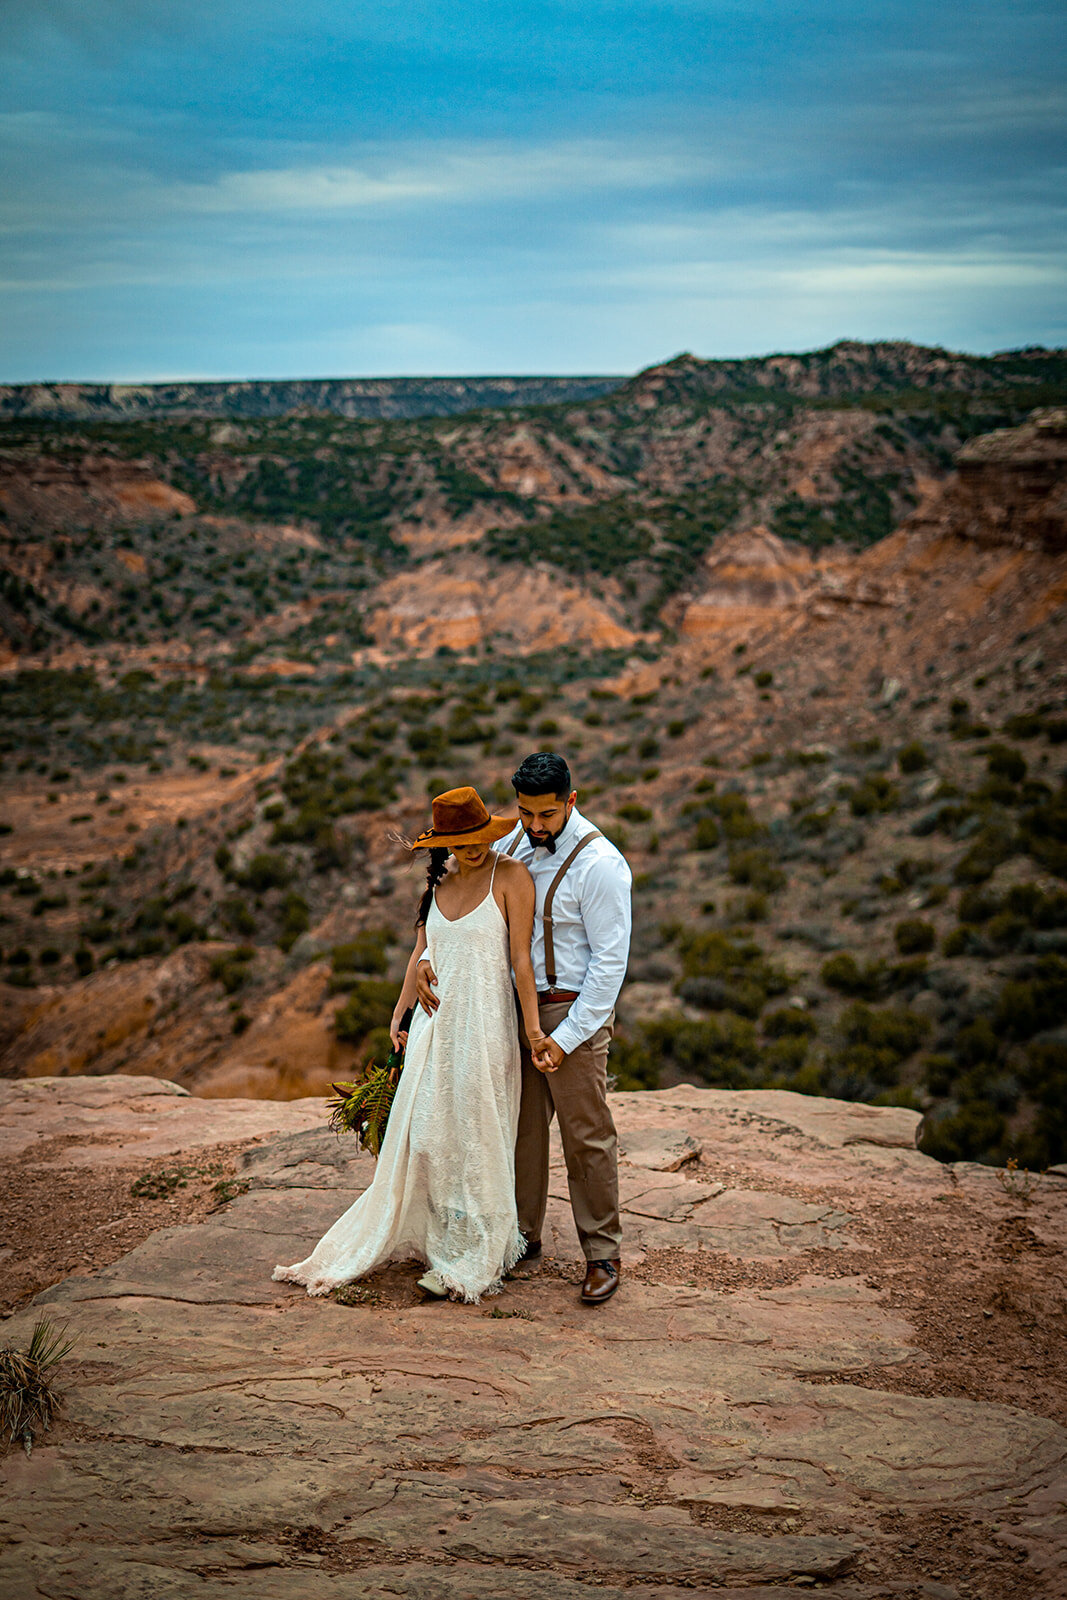 Lili_and_David_2020_Canyon_and_Pine_PaloDuro-63